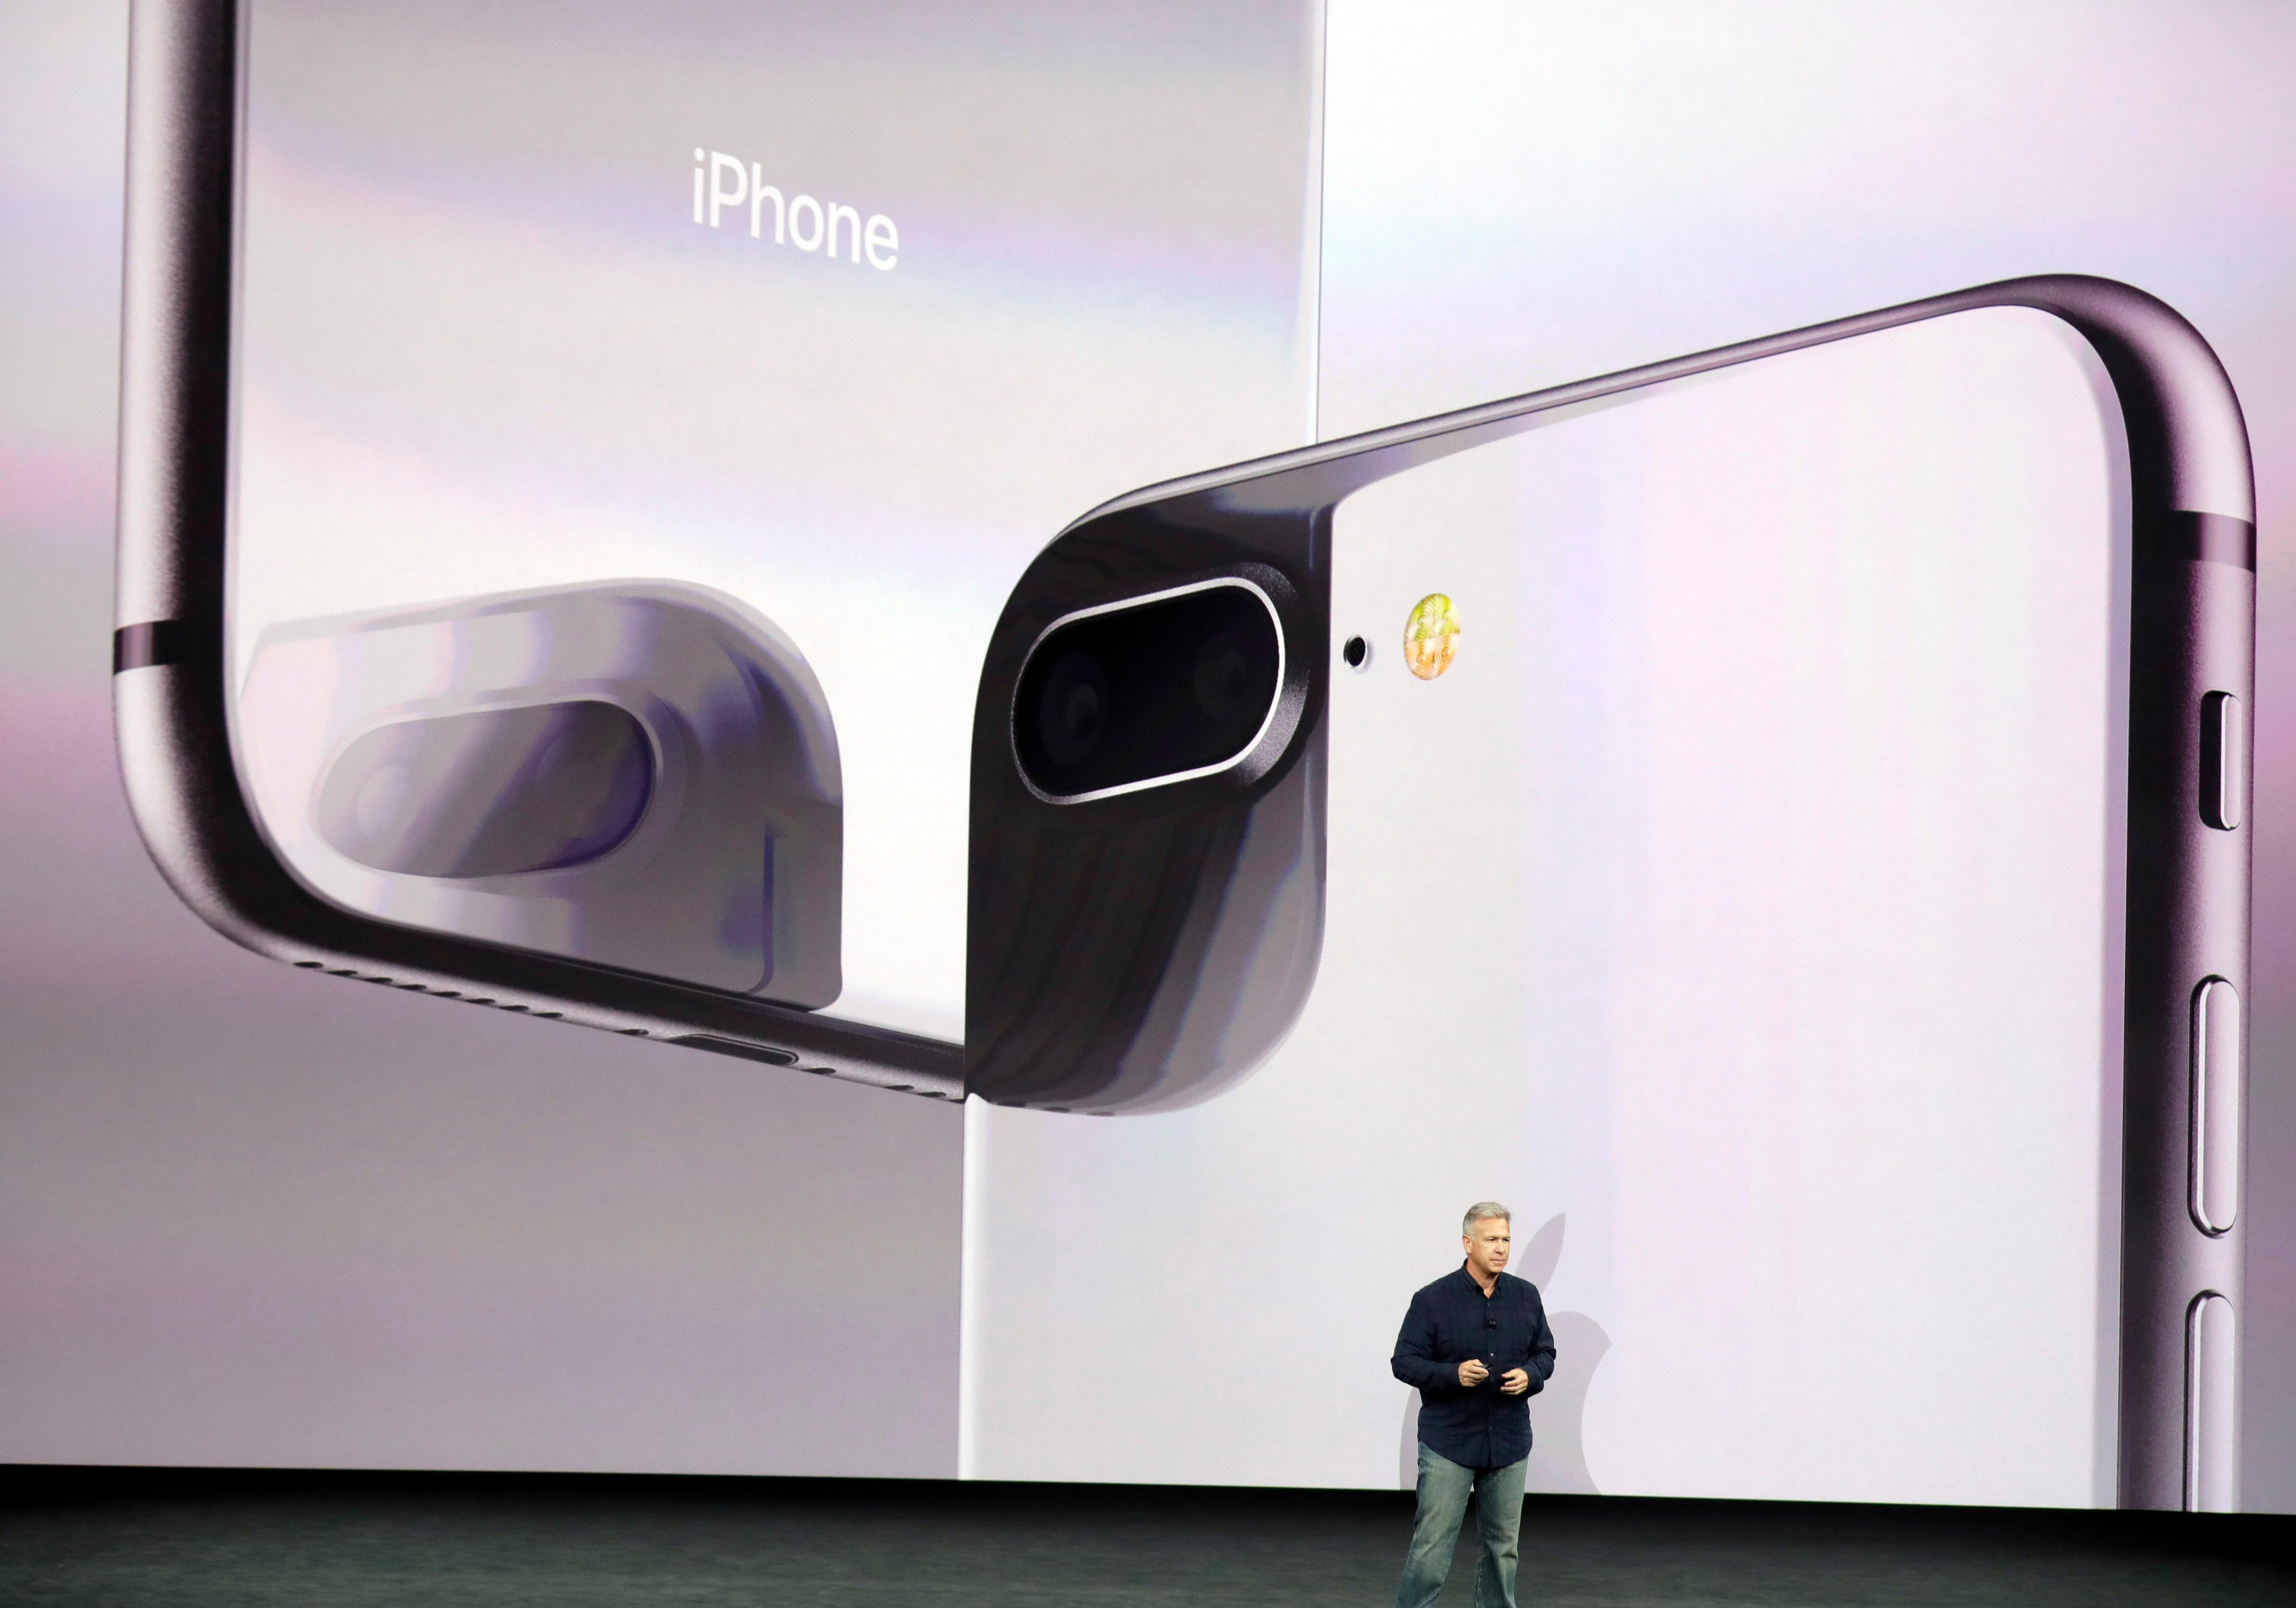 Phil Schiller, Apple's senior vice president of worldwide marketing, shows the new iPhone 8 at the Steve Jobs Theater on the new Apple campus on Tuesday, Sept. 12, 2017, in Cupertino, Calif. (AP Photo/Marcio Jose Sanchez)